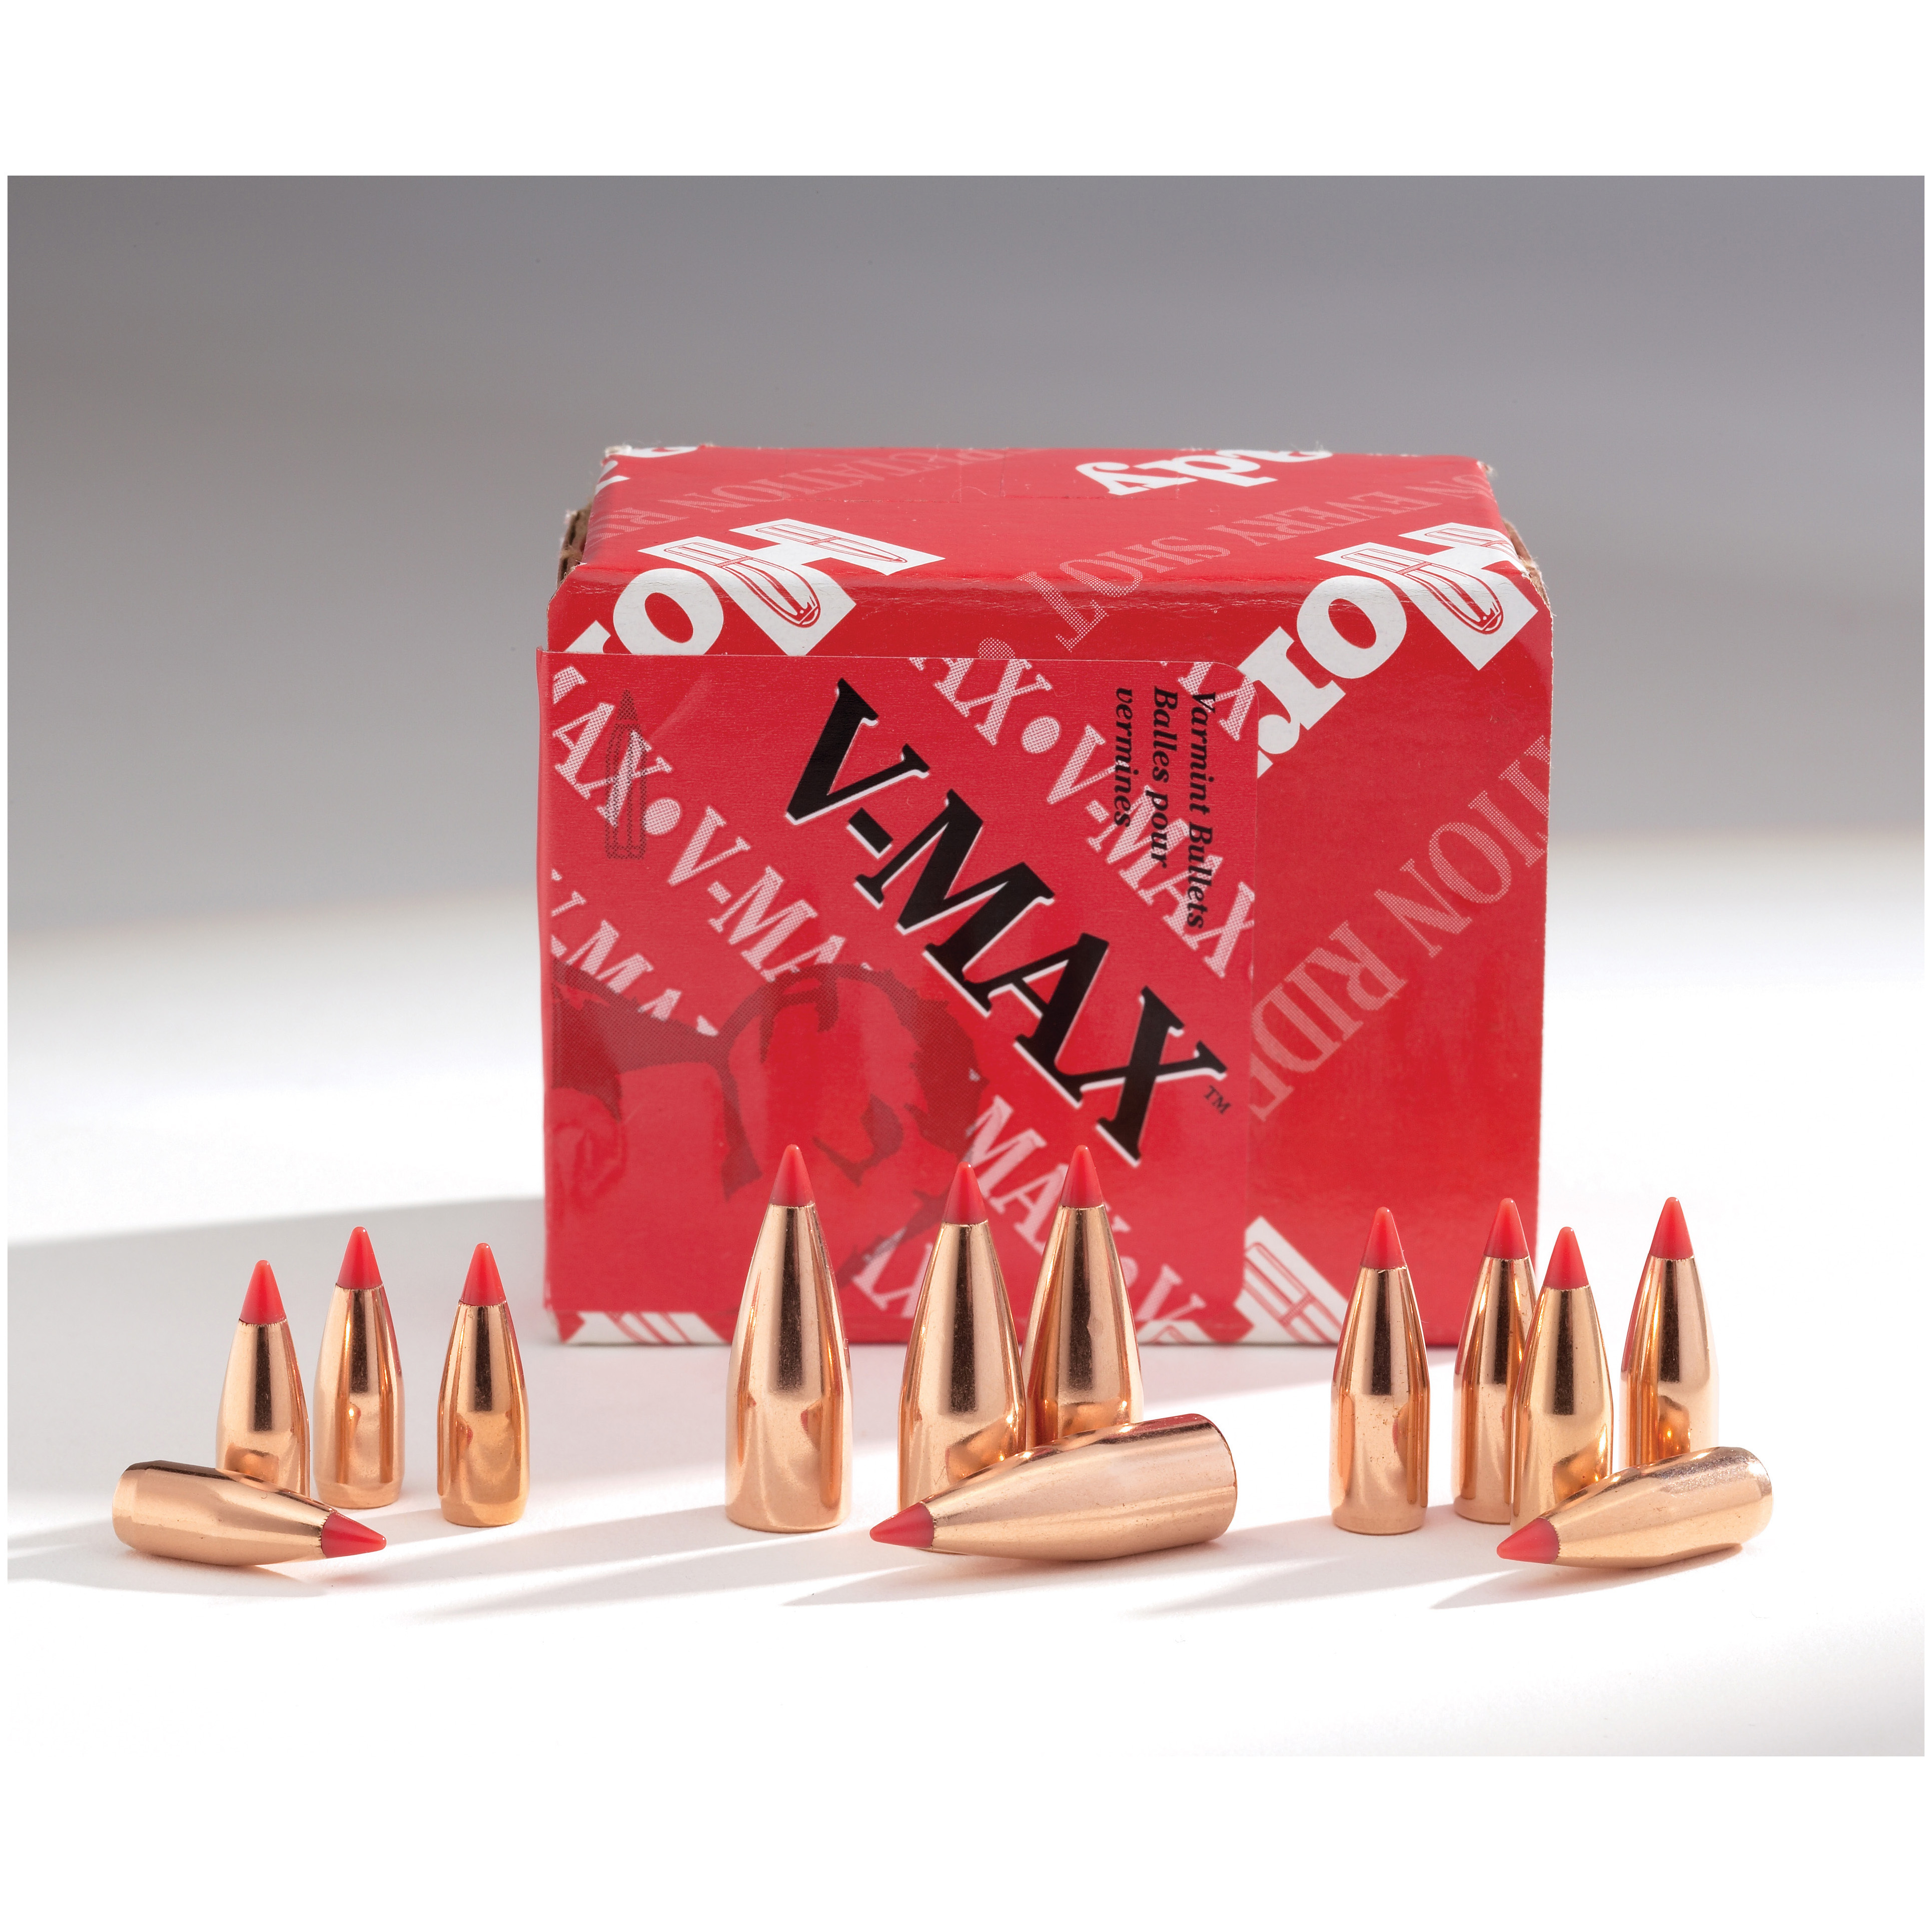 100-Pk. of Hornady .17 Caliber .172 20 Grain V-MAX Bullets. Down varmint with ease! You'll love the performance and stopping power of these Hornady .17 Caliber 20 Grain V-MAX Bullets. Upon impact the polymer tip expands and causes dramatic fragmentation of the core and jacket. Constructed with a streamlined design, so every shot has an ultra-flat trajectory. It's the perfect bullet for hunting varmint and other small critters.Features:Polymer tip initiates dramatic expansion upon impact Aerodynamic design for a high ballistic coefficient and in-flight stability Swagged lead core builds up energy which helps cause dramatic fragmentation of the core and jacket 20 Grain weight 100 bullets per box. Order up today! - $19.99